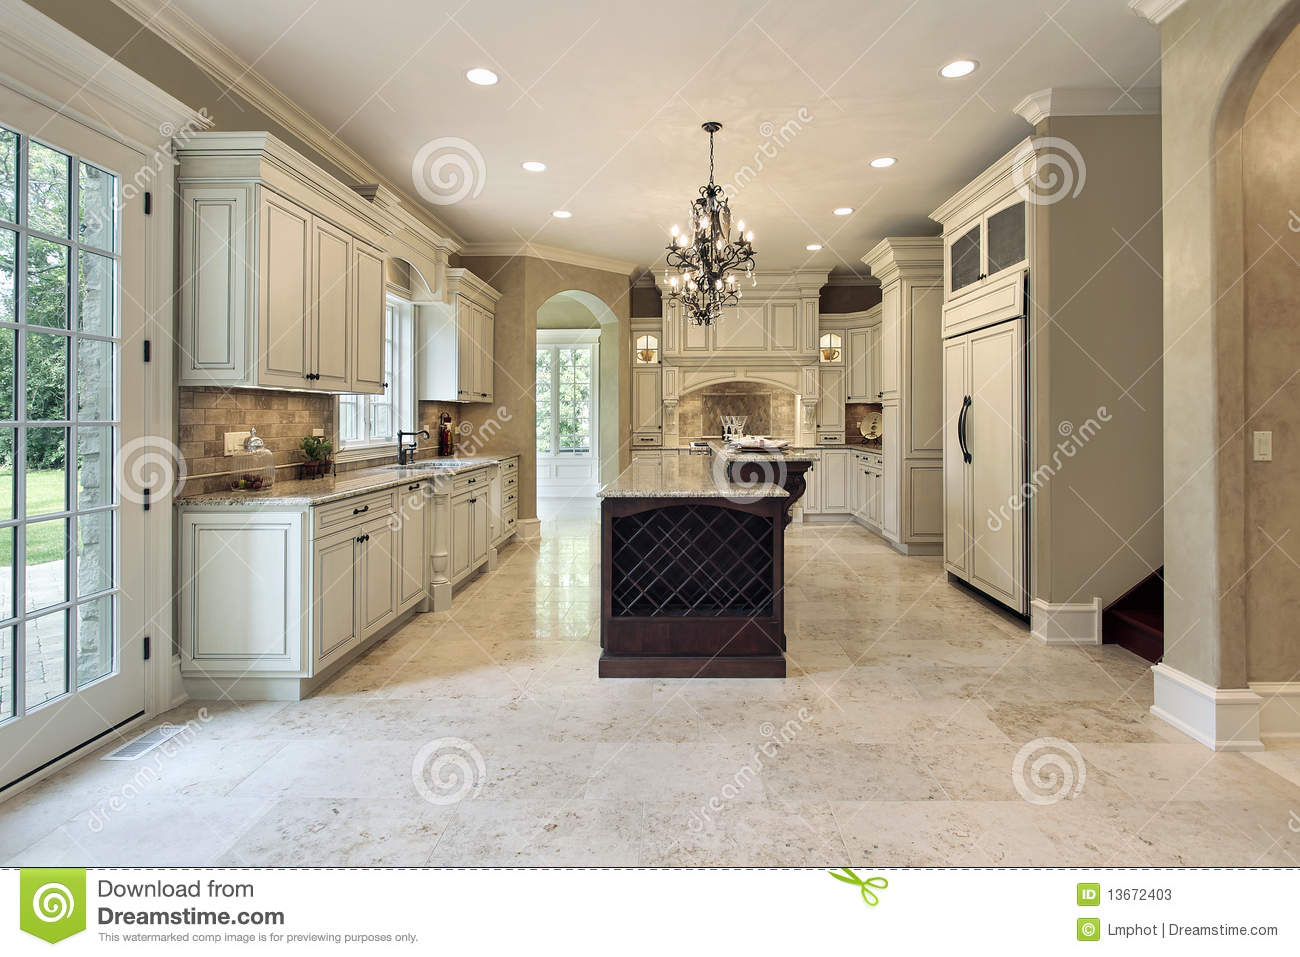 Kitchen With Double Deck Island Stock Image Image Of